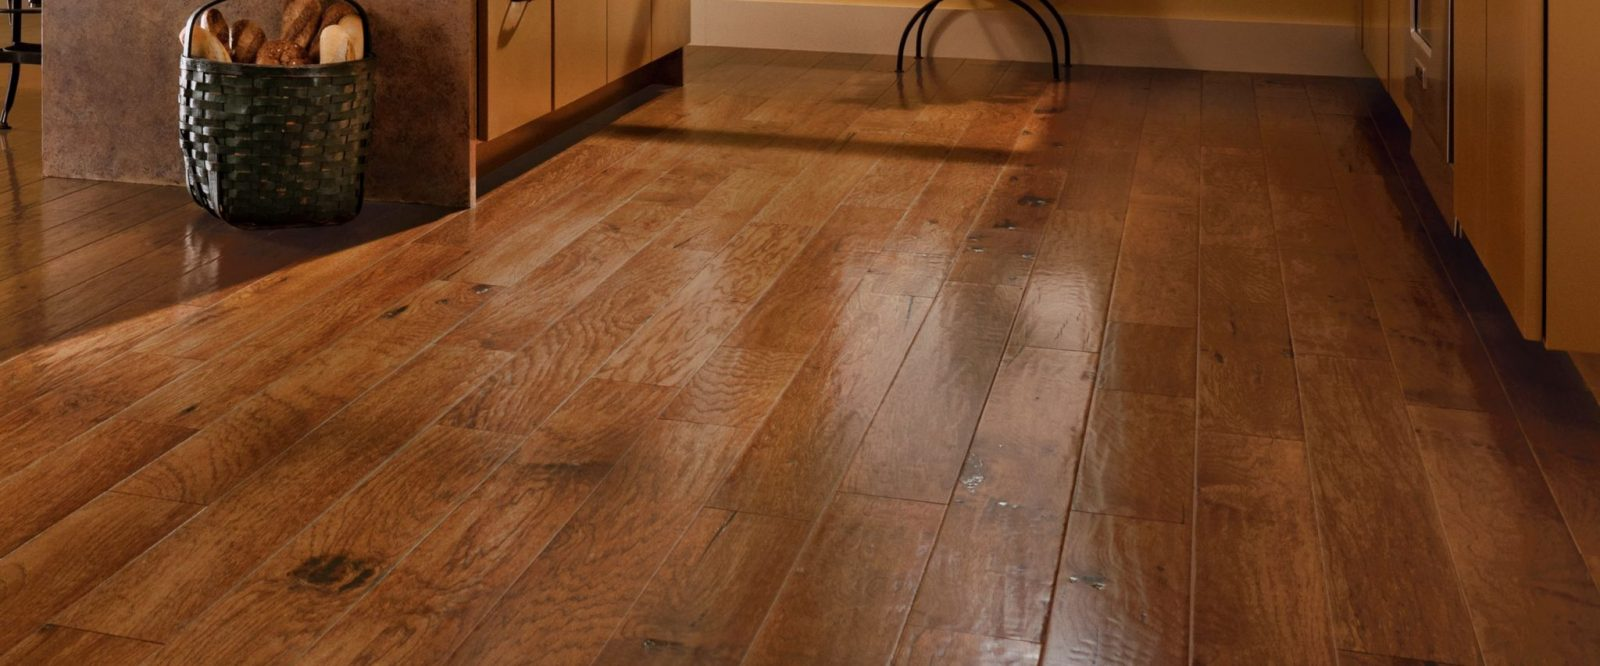 Armstrong-American-Scraped-Hickory | The Floor Store